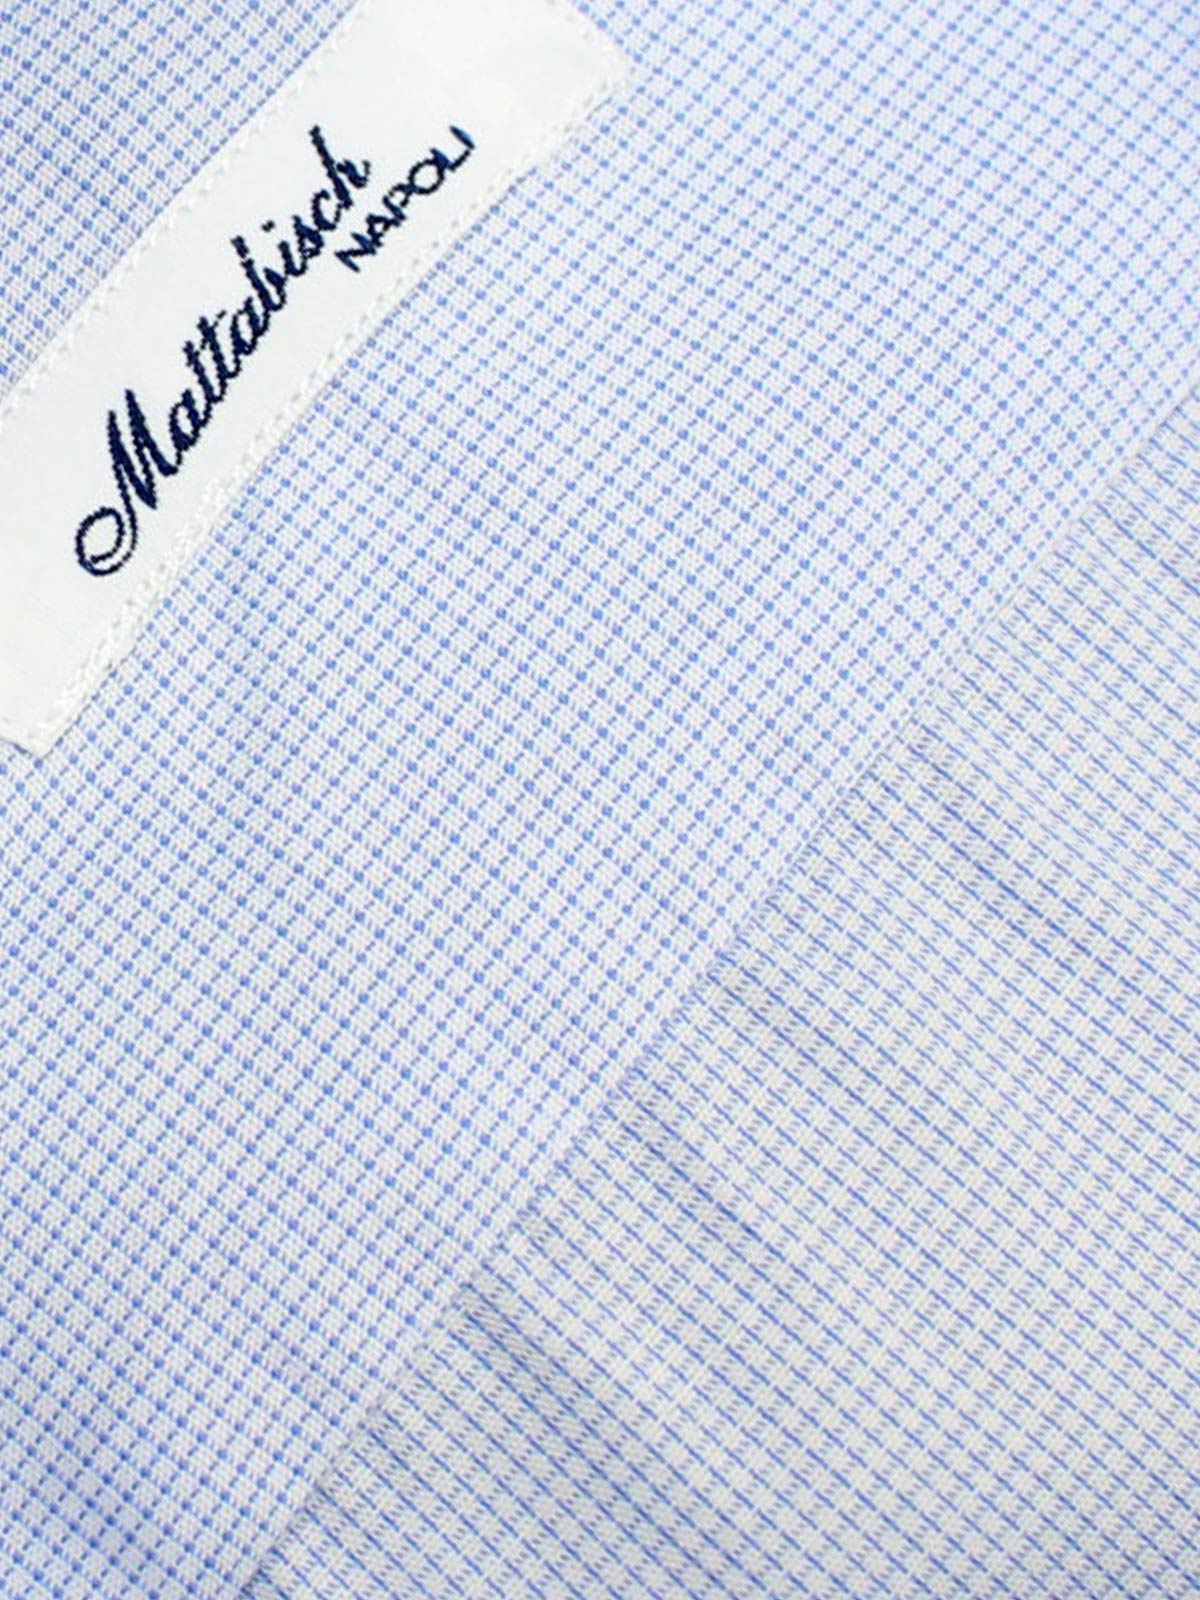 Mattabisch Napoli Shirt White Blue Micro Check